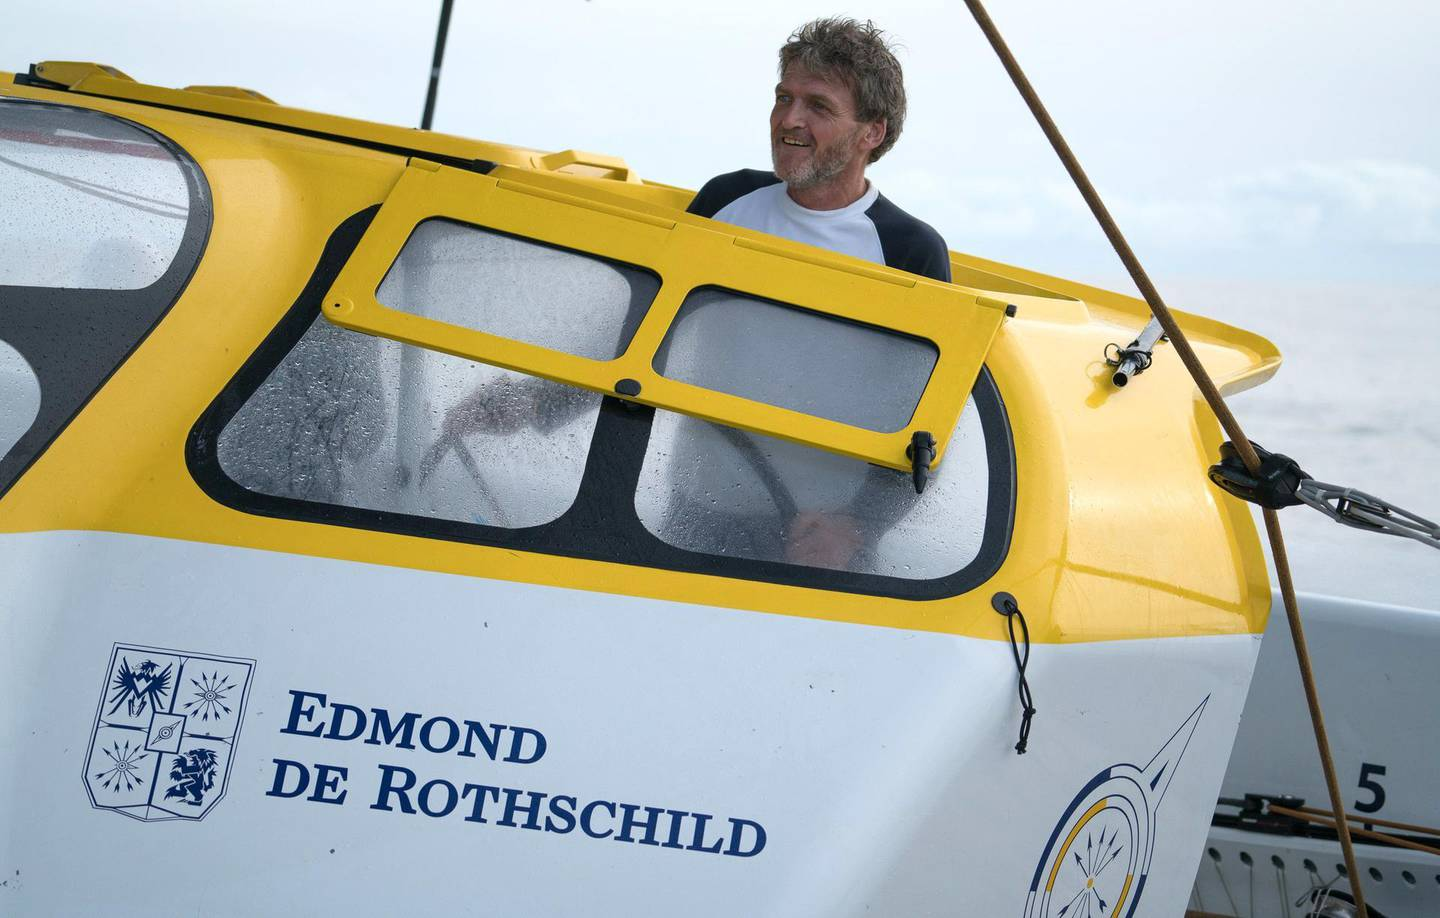 """This undated picture made available on January 16, 2021 by Gitana S.A press office shows Baron Benjamin de Rothschild at the helm of the Maxi Edmond de Rothschild. Baron Benjamin de Rothschild, chairman of the board of directors of Edmond de Rothschild Holding SA, the entity which oversees the Edmond de Rothschild Group, died on January 15, 2021, his family told AFP. - RESTRICTED TO EDITORIAL USE - MANDATORY CREDIT """"AFP PHOTO /Yann Riou / PolaRYSE / Gitana SA  """" - NO MARKETING - NO ADVERTISING CAMPAIGNS - DISTRIBUTED AS A SERVICE TO CLIENTS  / AFP / Yann Riou /polaRYSE / GITANA S.A / Yann Riou /polaRYSE / GITANA S.A / RESTRICTED TO EDITORIAL USE - MANDATORY CREDIT """"AFP PHOTO /Yann Riou / PolaRYSE / Gitana SA  """" - NO MARKETING - NO ADVERTISING CAMPAIGNS - DISTRIBUTED AS A SERVICE TO CLIENTS"""